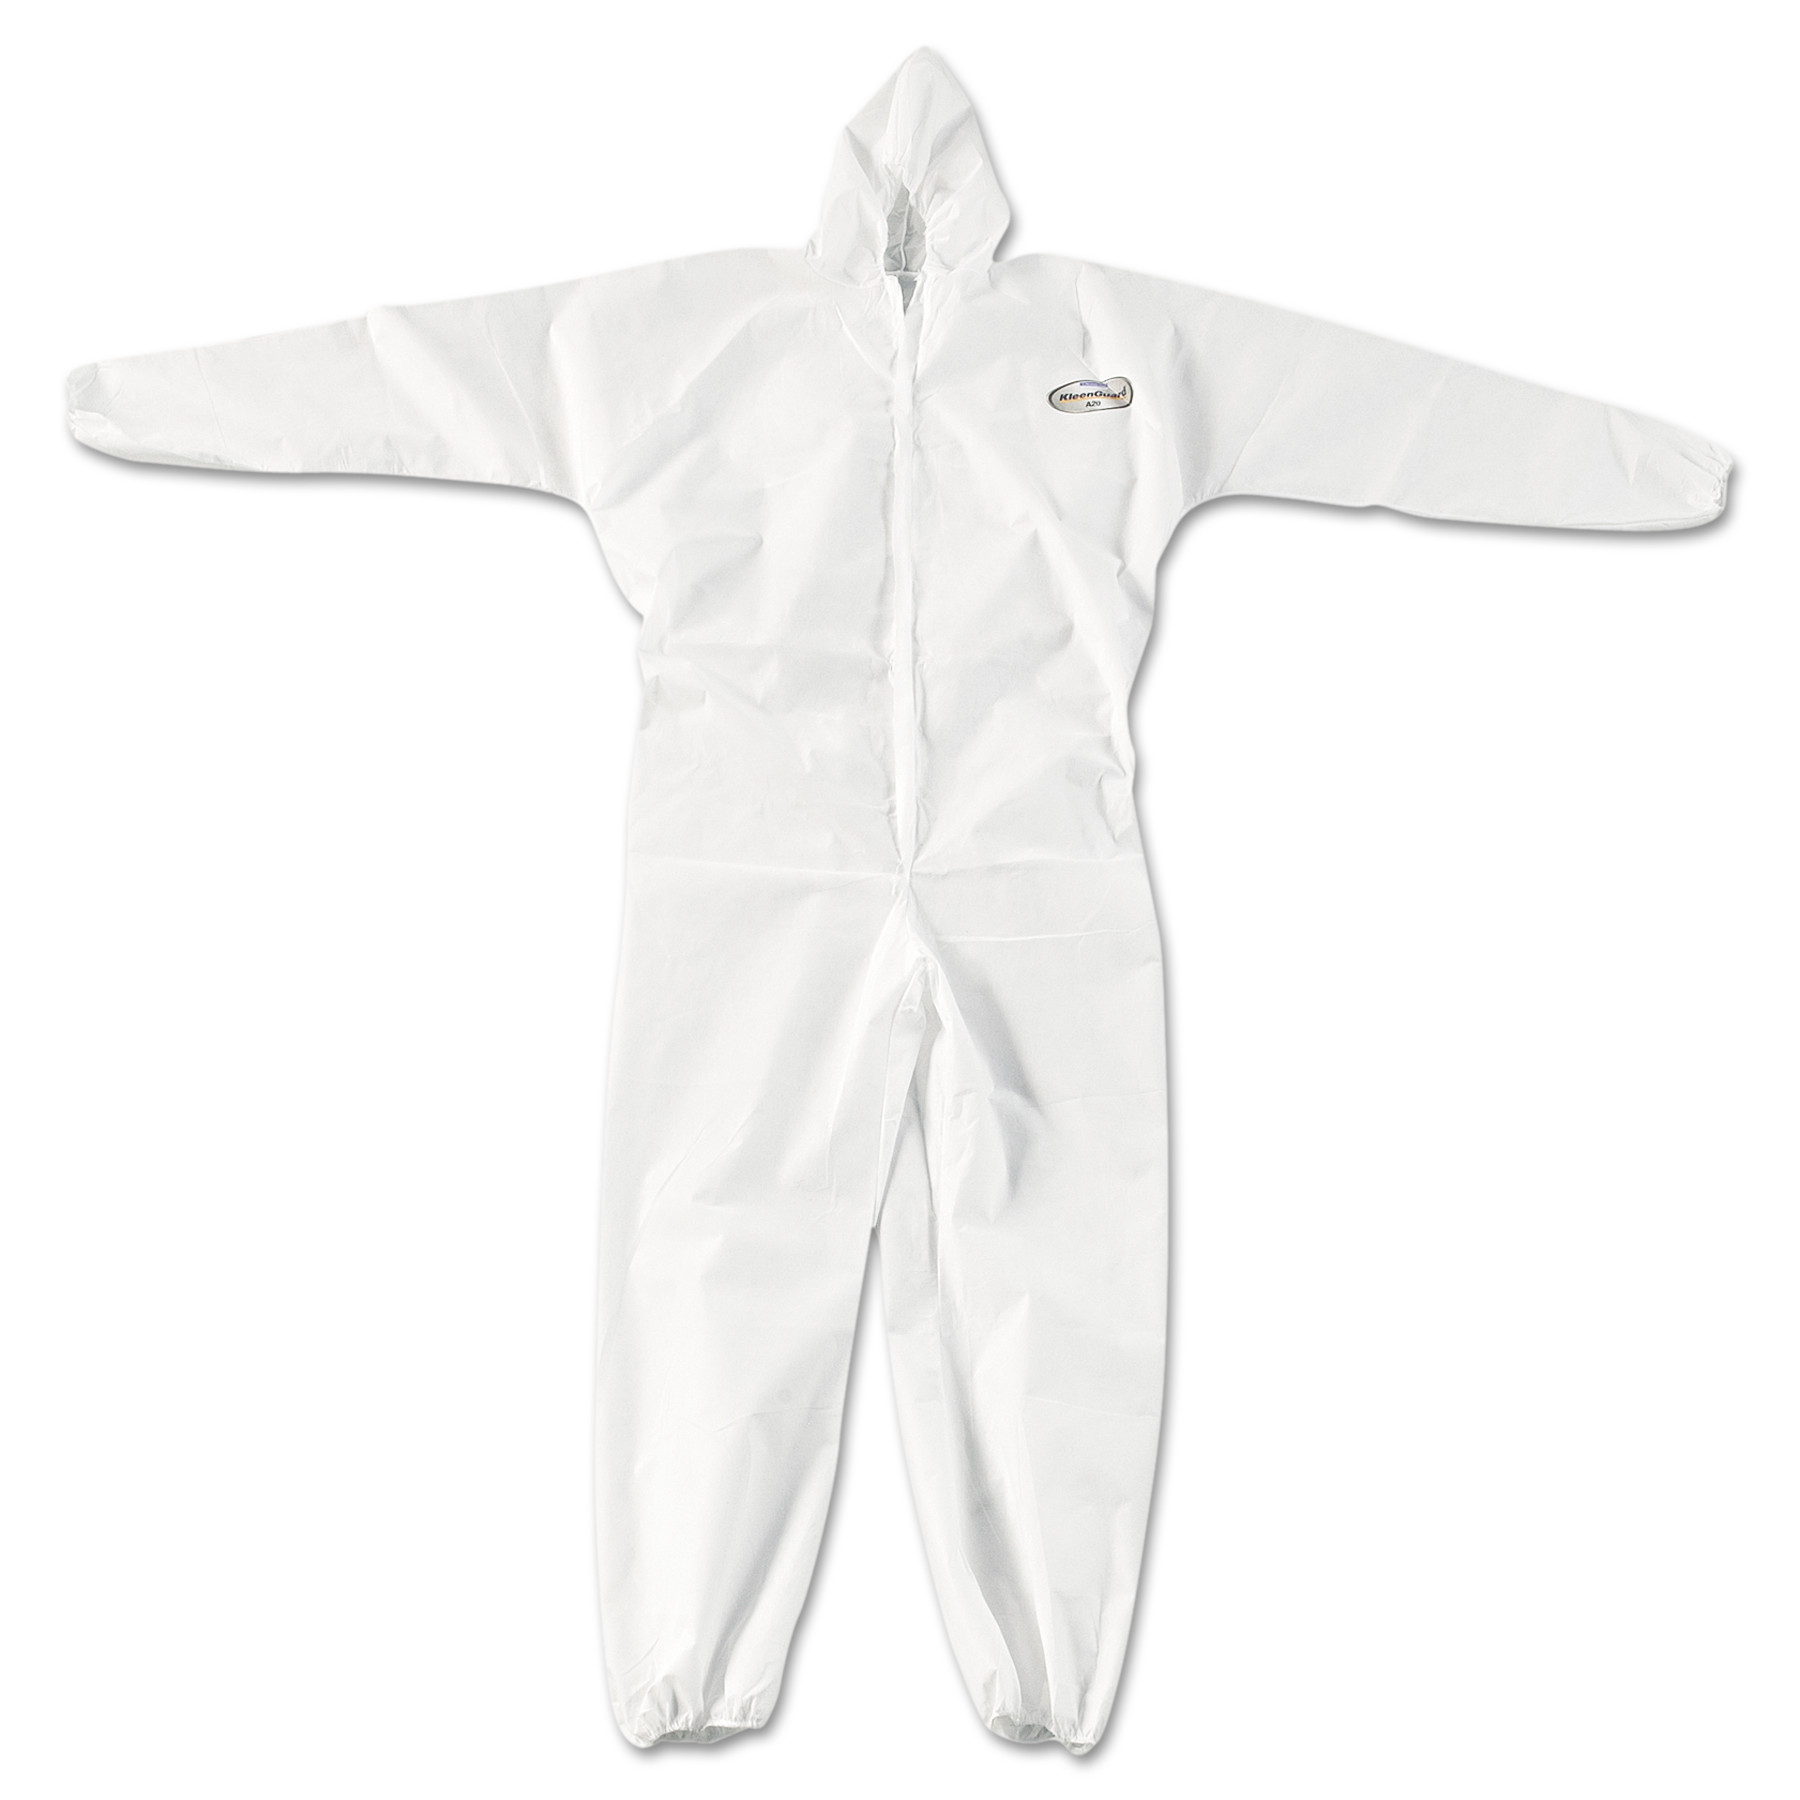 A20 Elastic Back, Cuff and Ankle Coveralls, Zip, XL, White, 24 Per Carton by Kimberly Clark